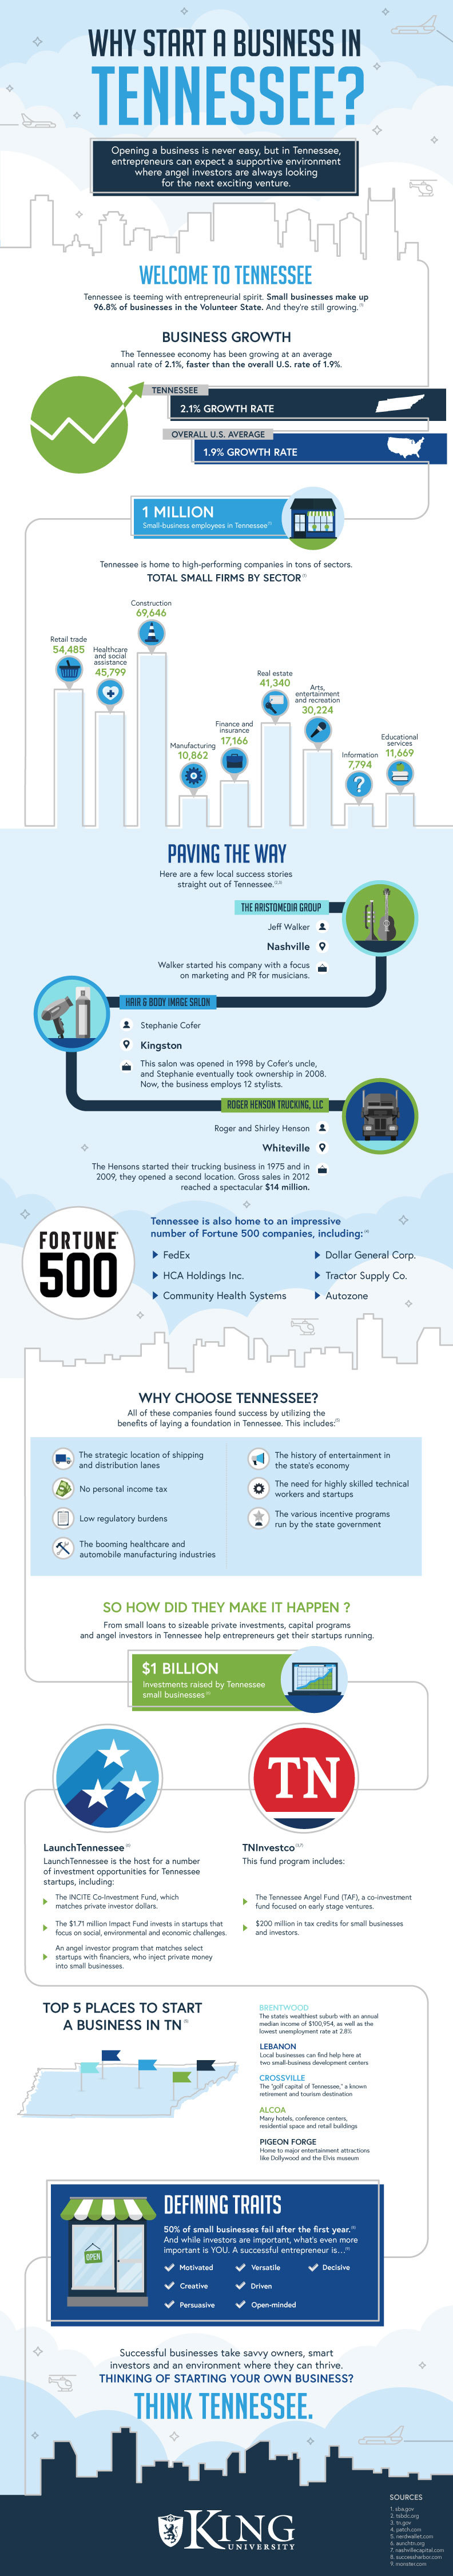 Why Start a Business in Tennessee?